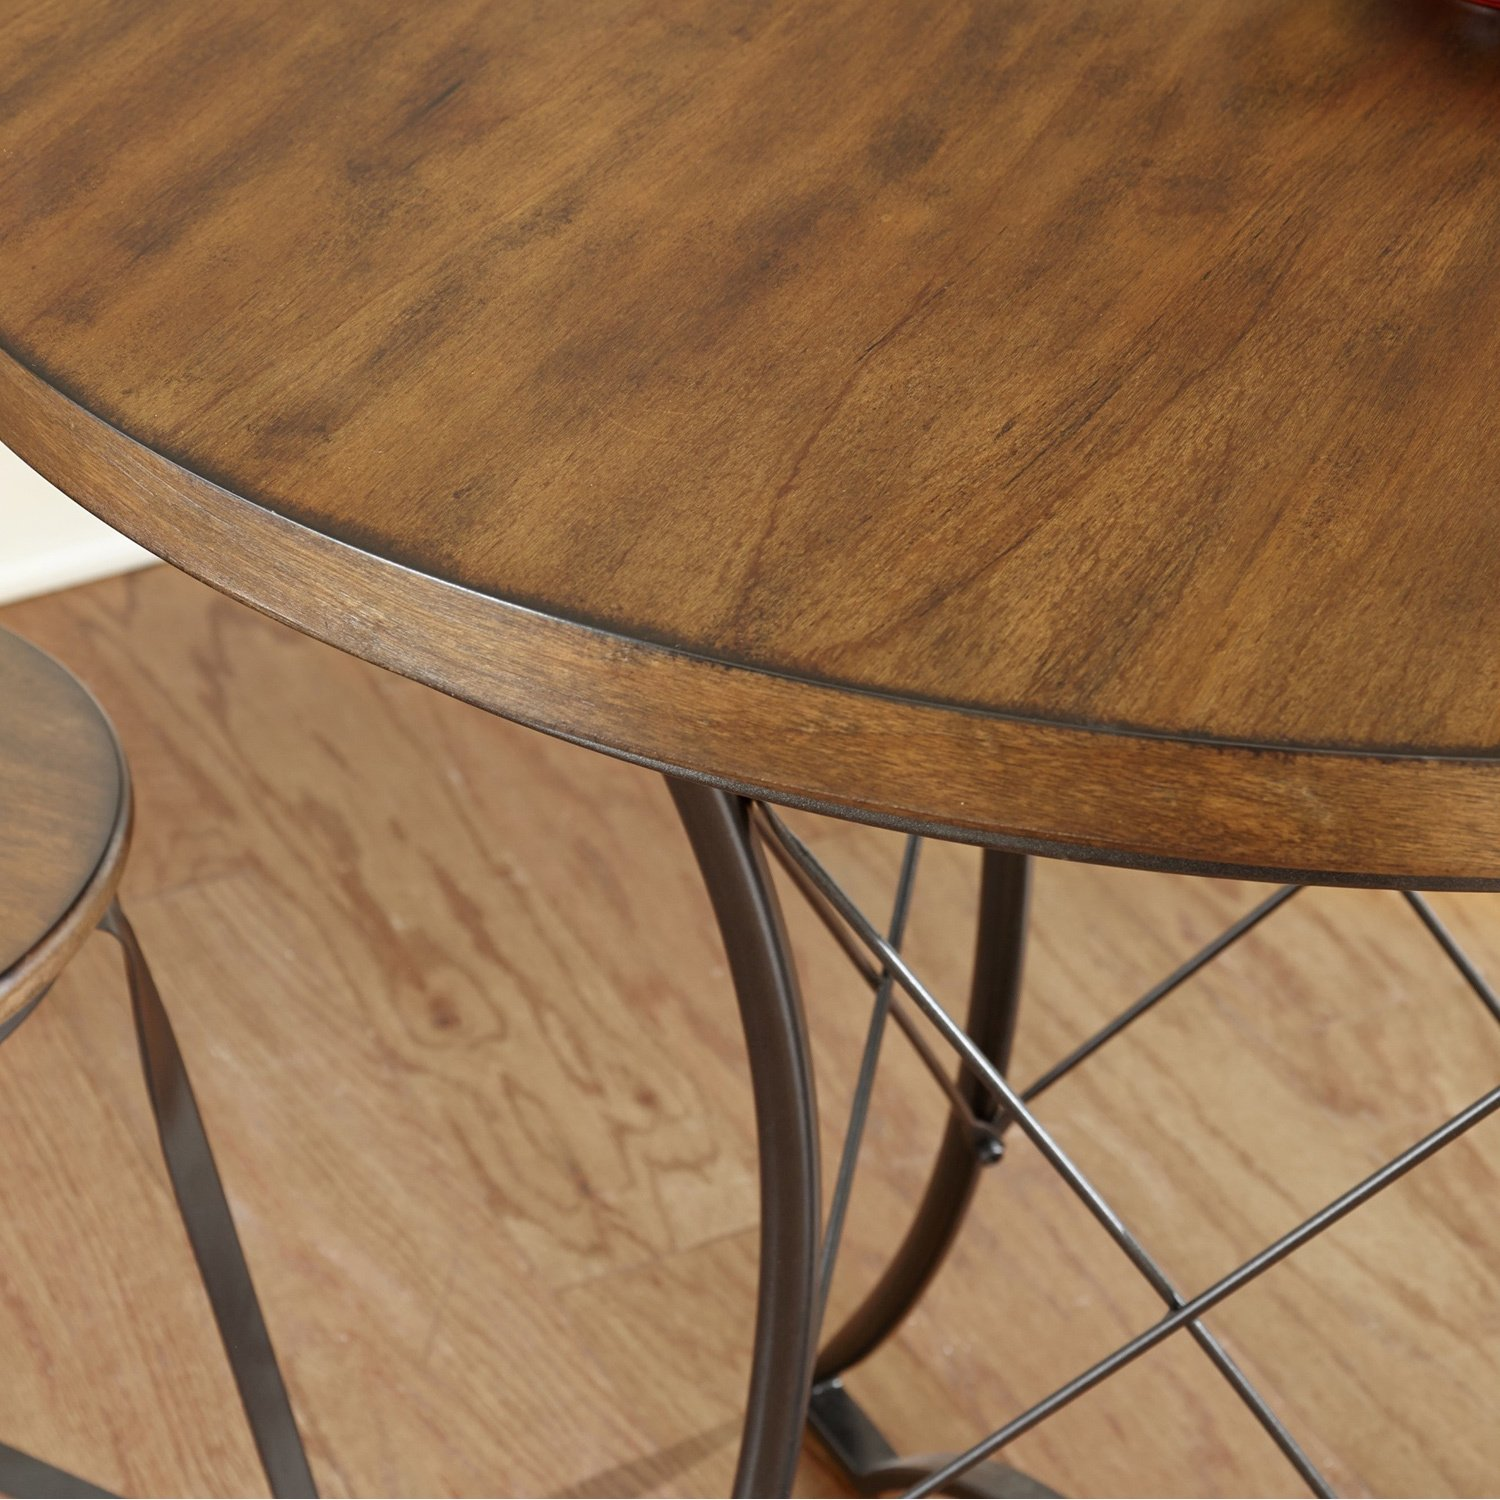 Greyson Living Counter Height Pub Table by Greyson Living